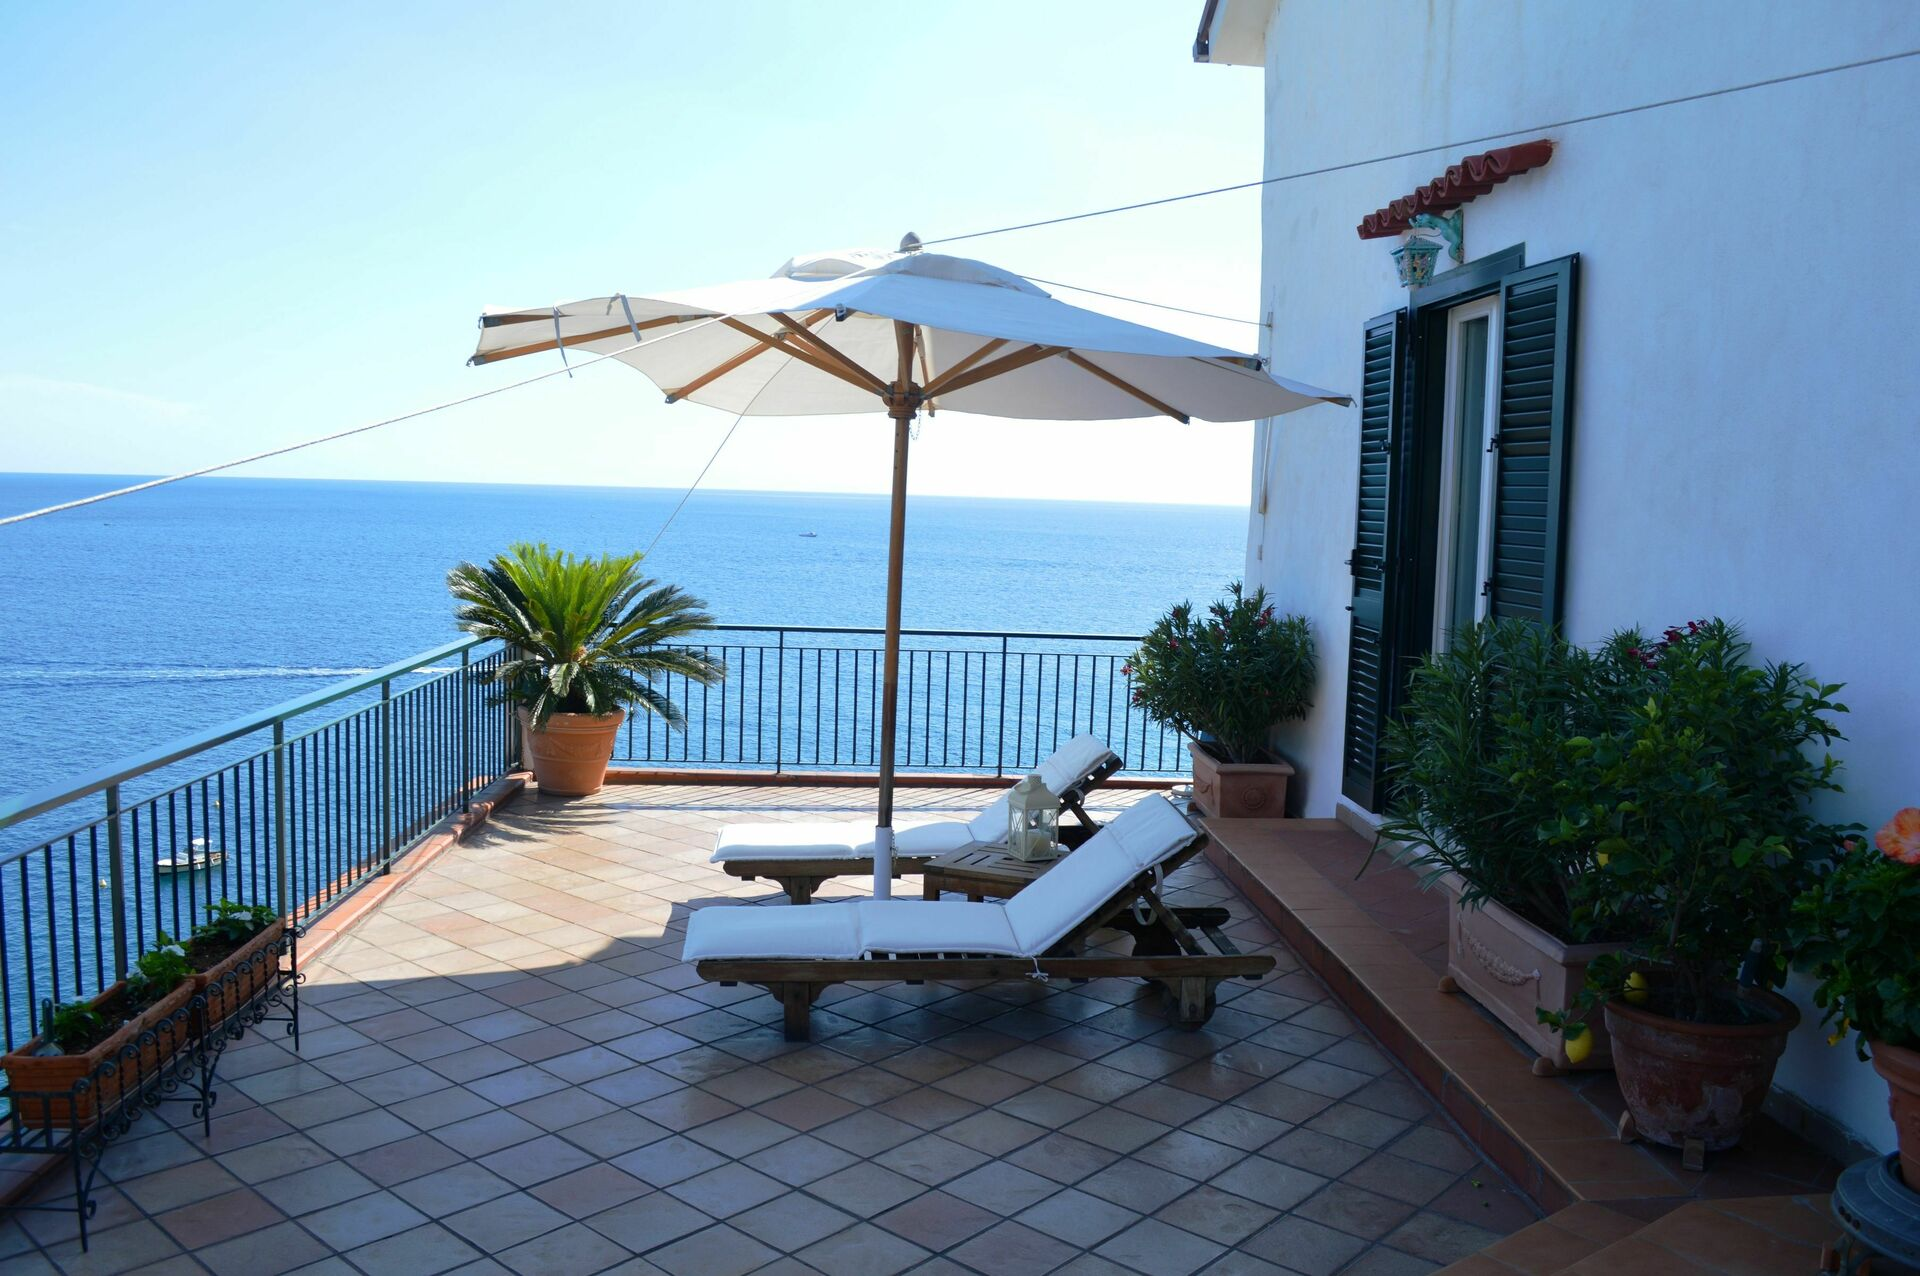 La Terrazza Di Atrani, Apartment vacation rental in Atrani Campania ...